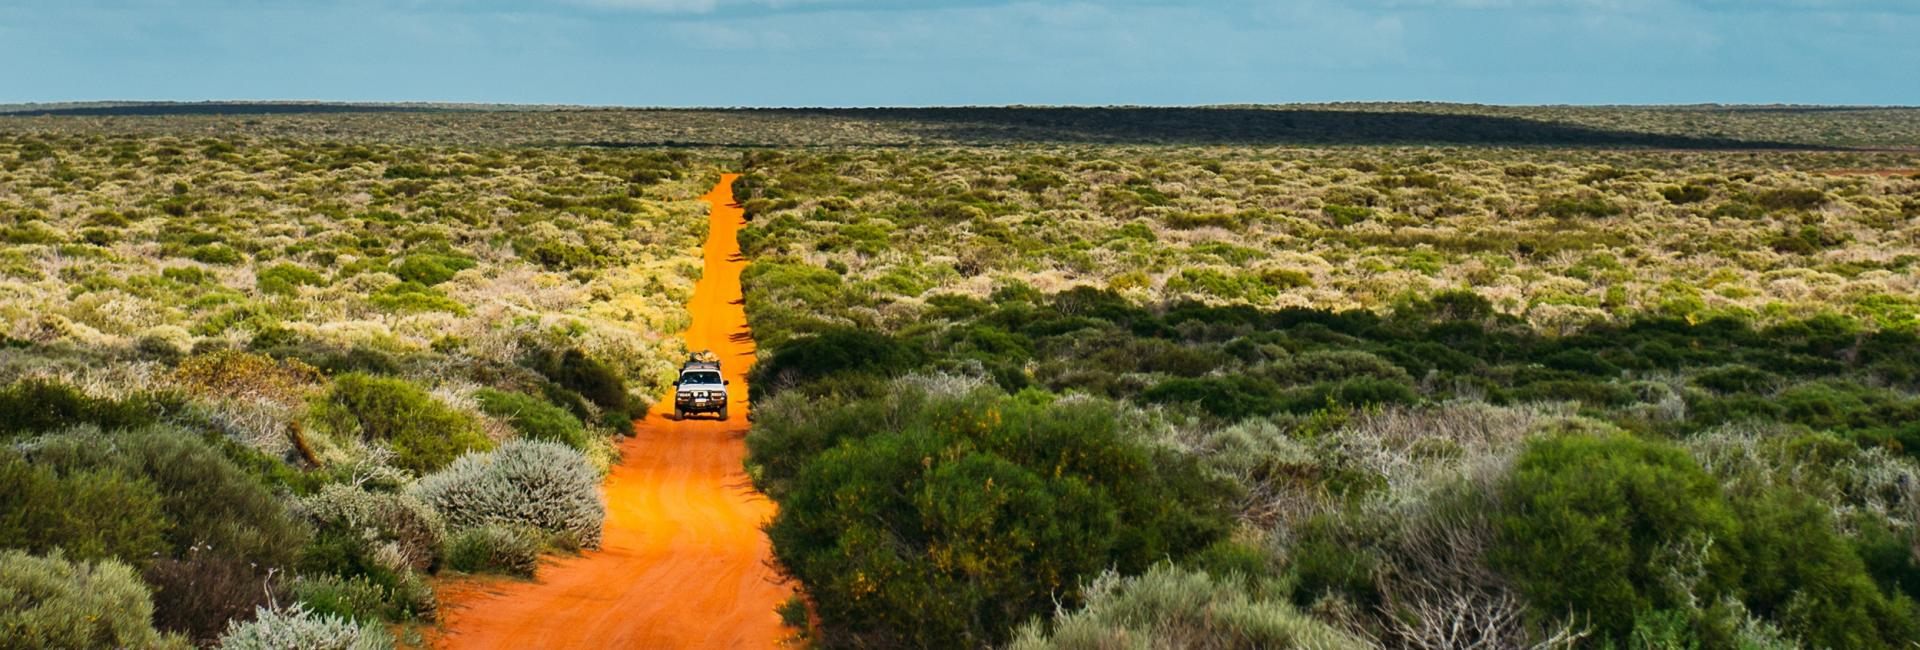 Western Australia 4wd Map.Maps Of The Coral Coast Australia S Coral Coast Western Australia